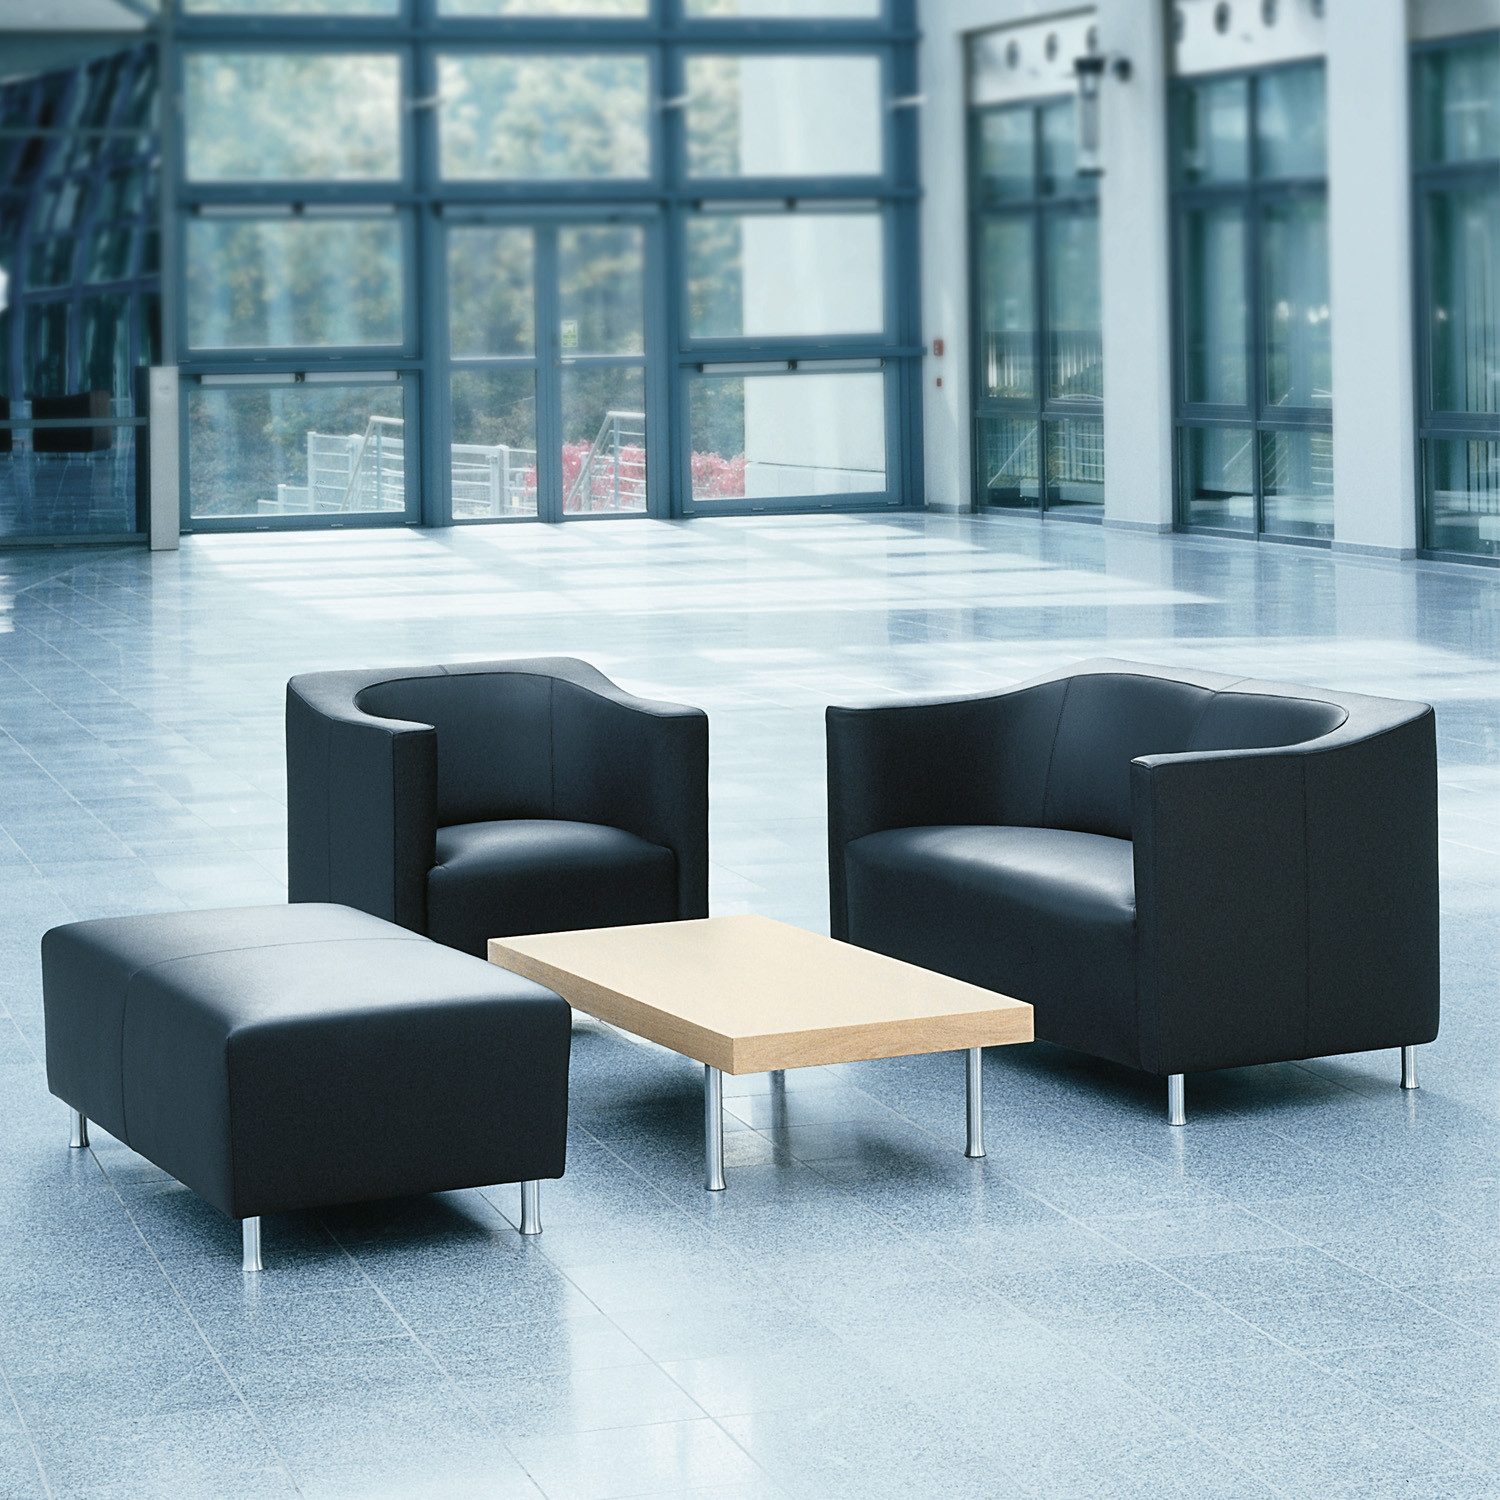 Havana Leather Reception Seating Range